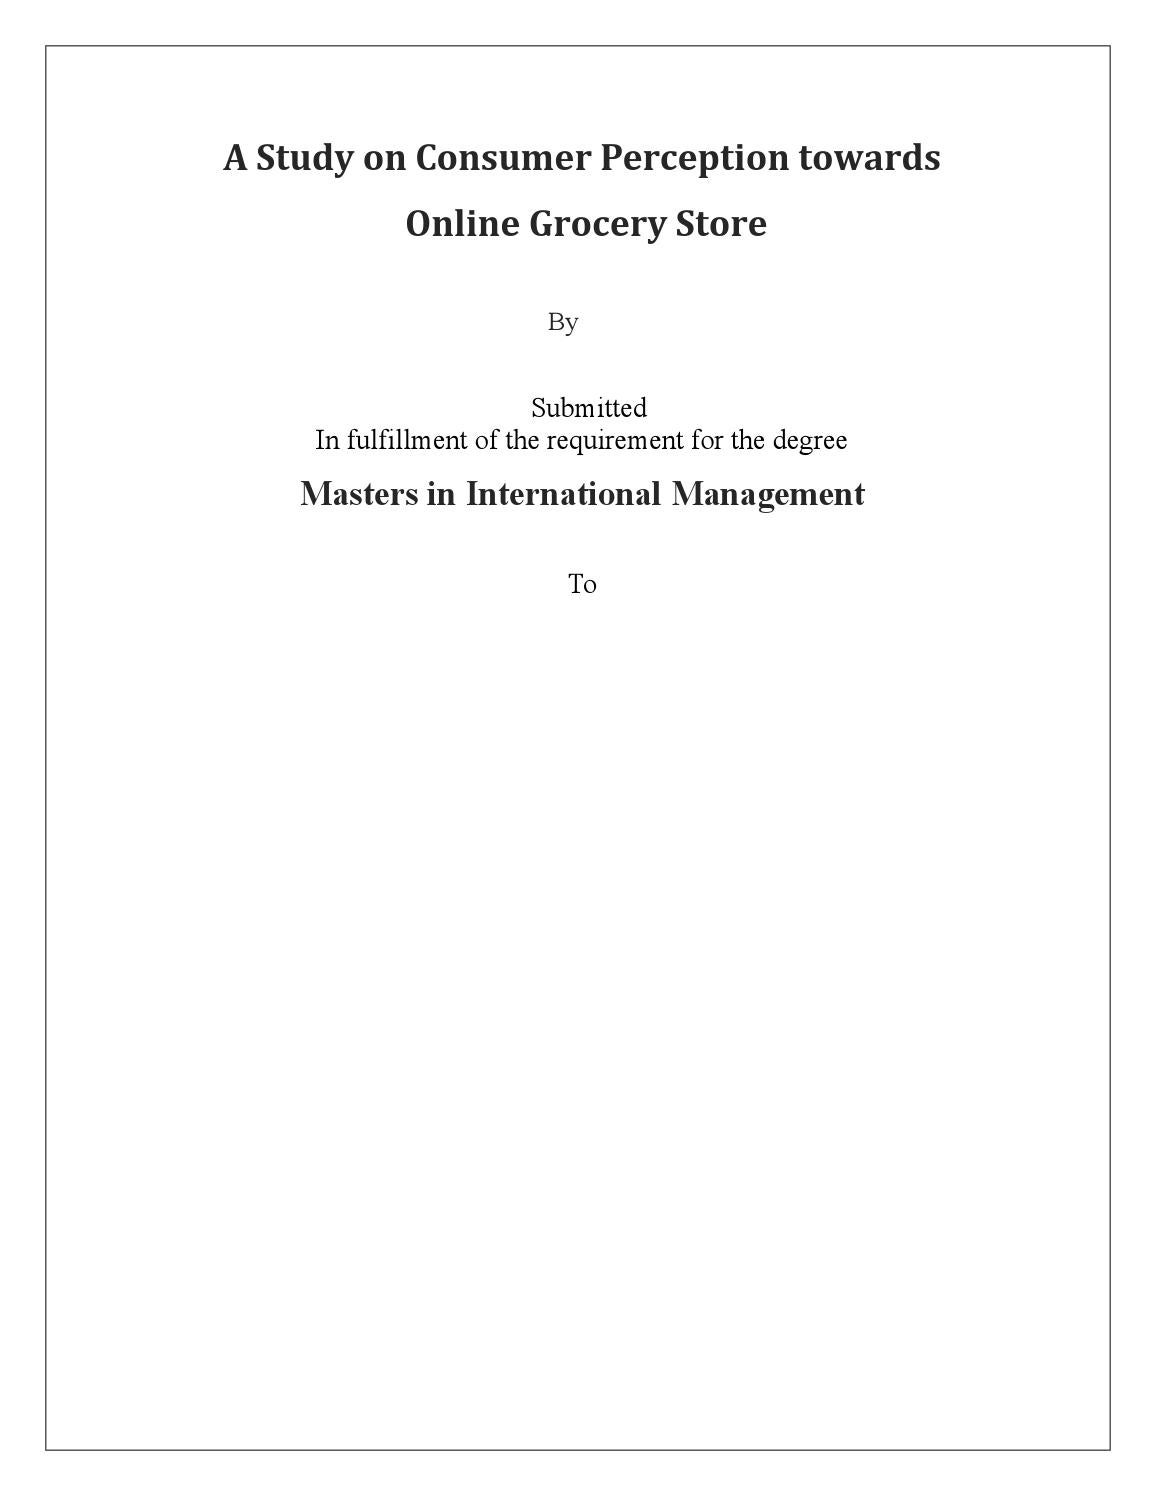 A study on consumer perception towards online grocery store